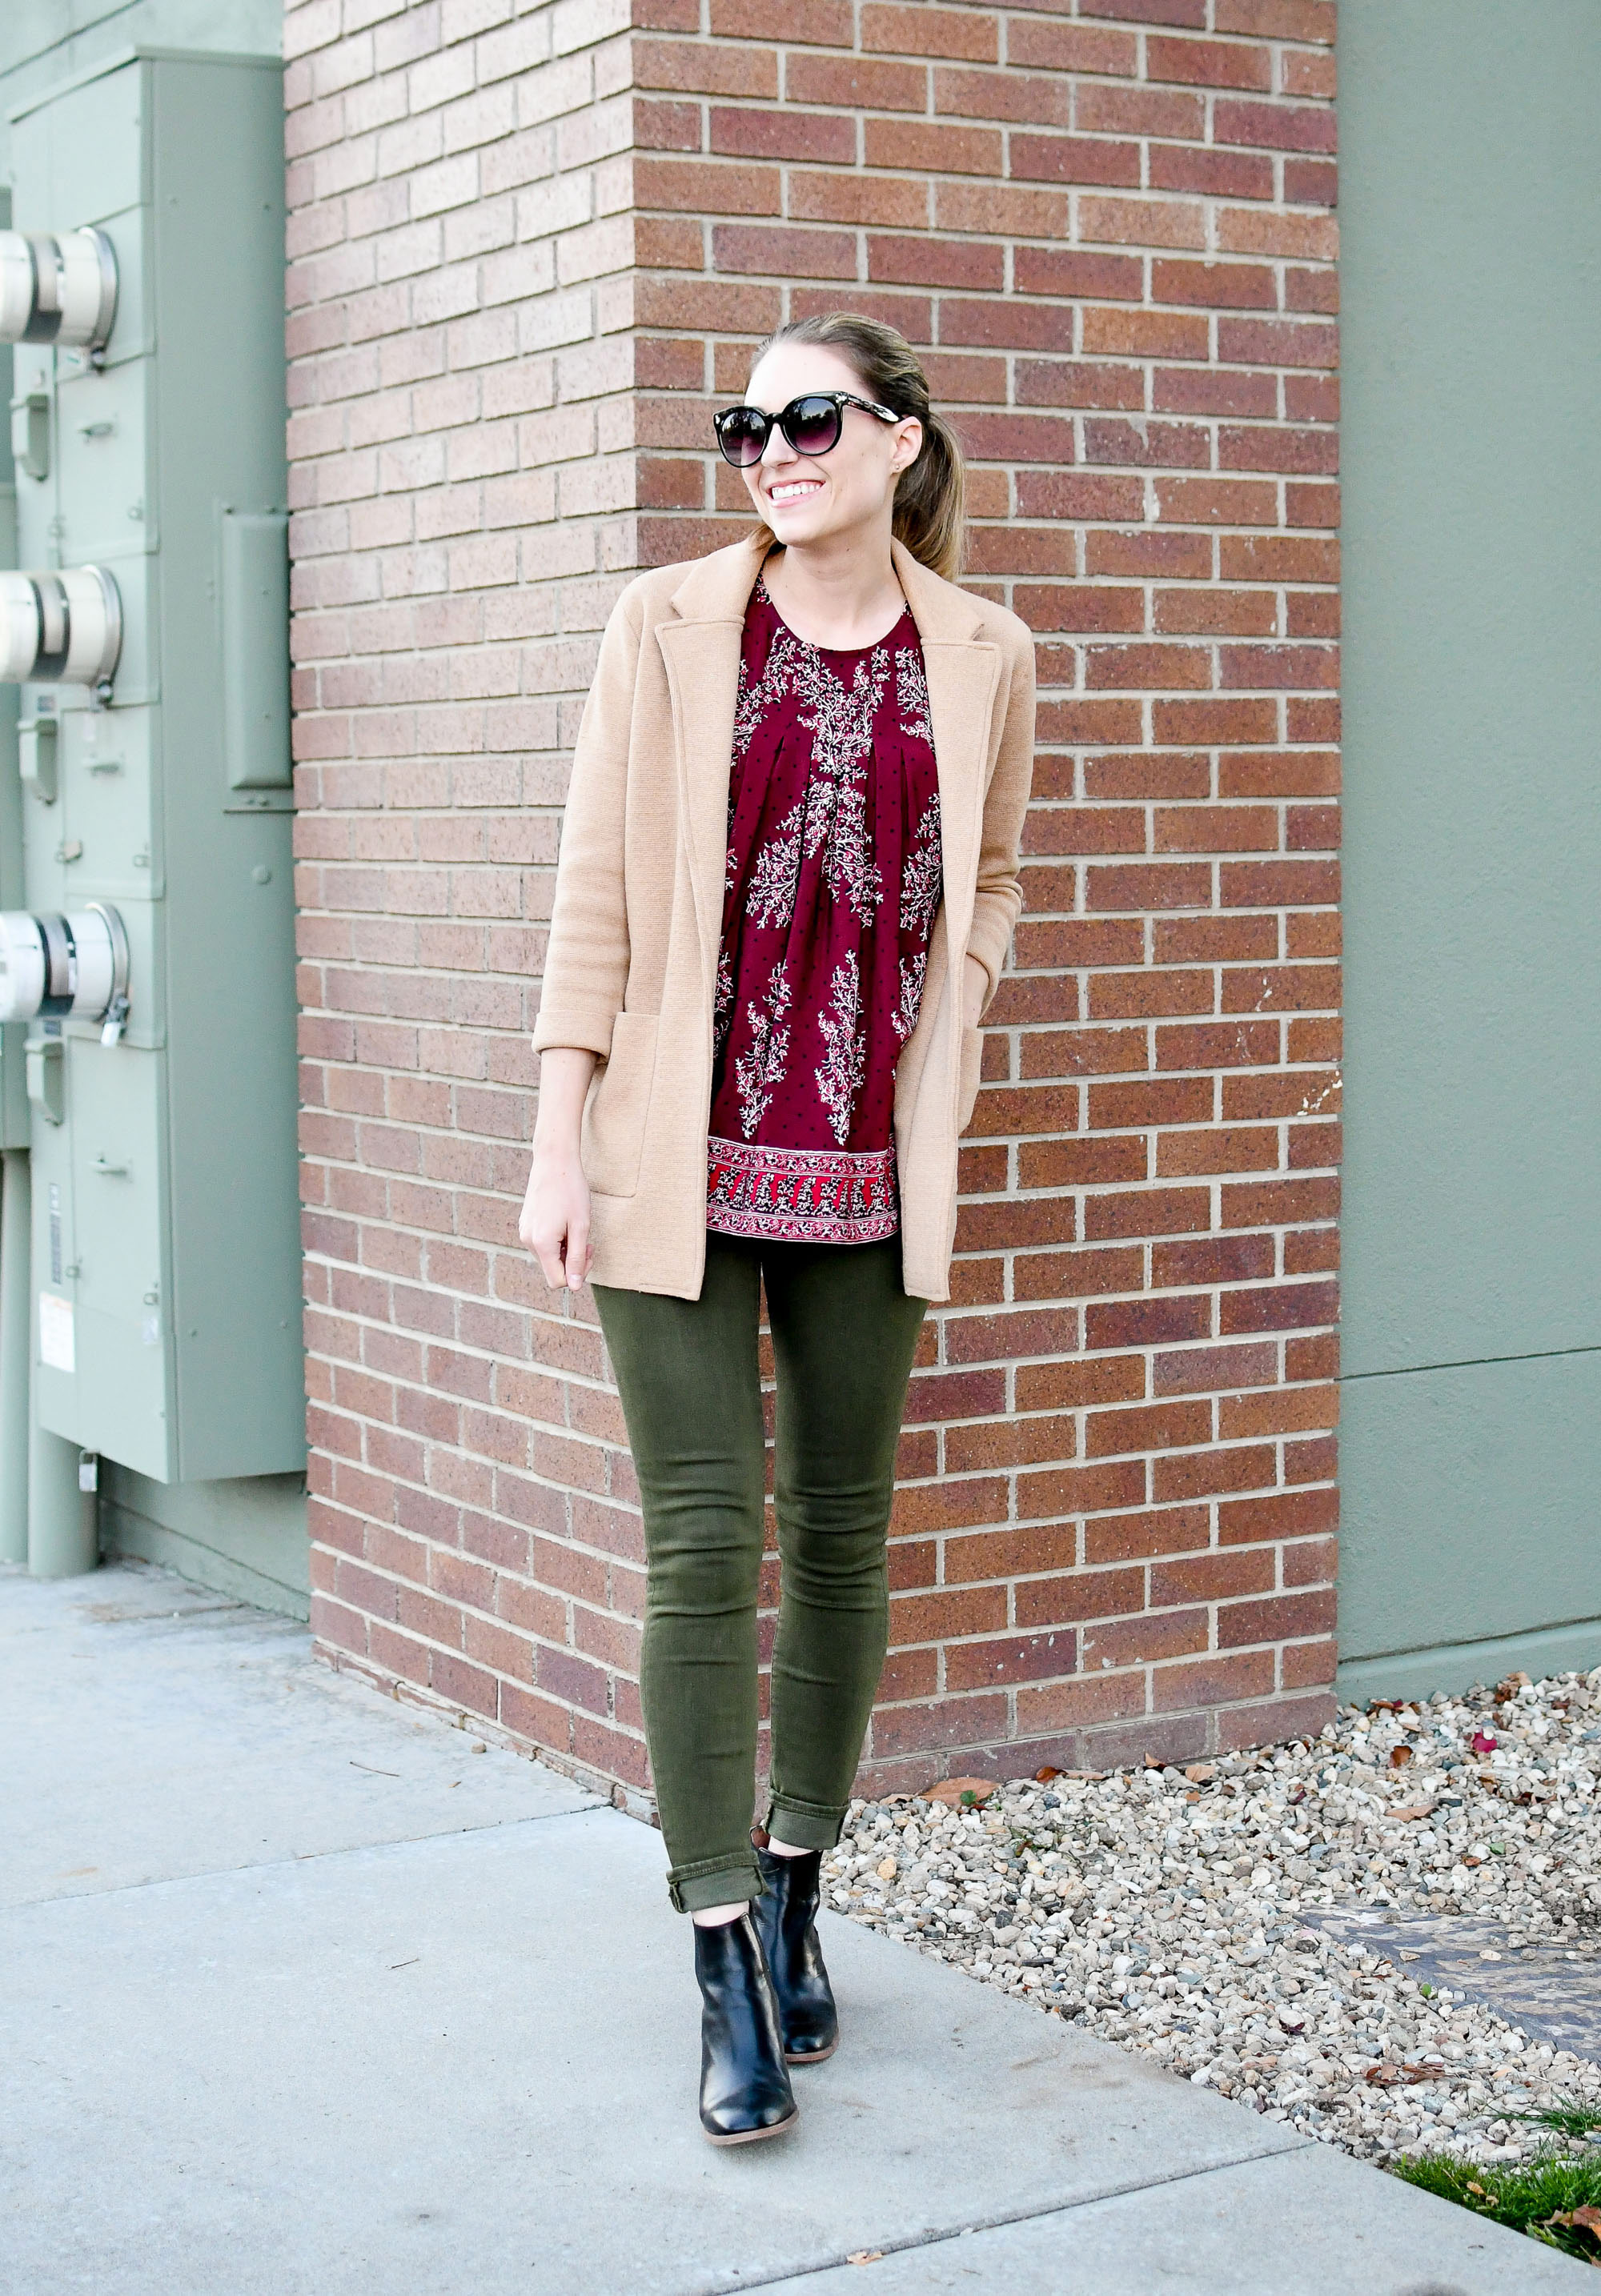 Fall outfit with burgundy top and olive jeans — Cotton Cashmere Cat Hair